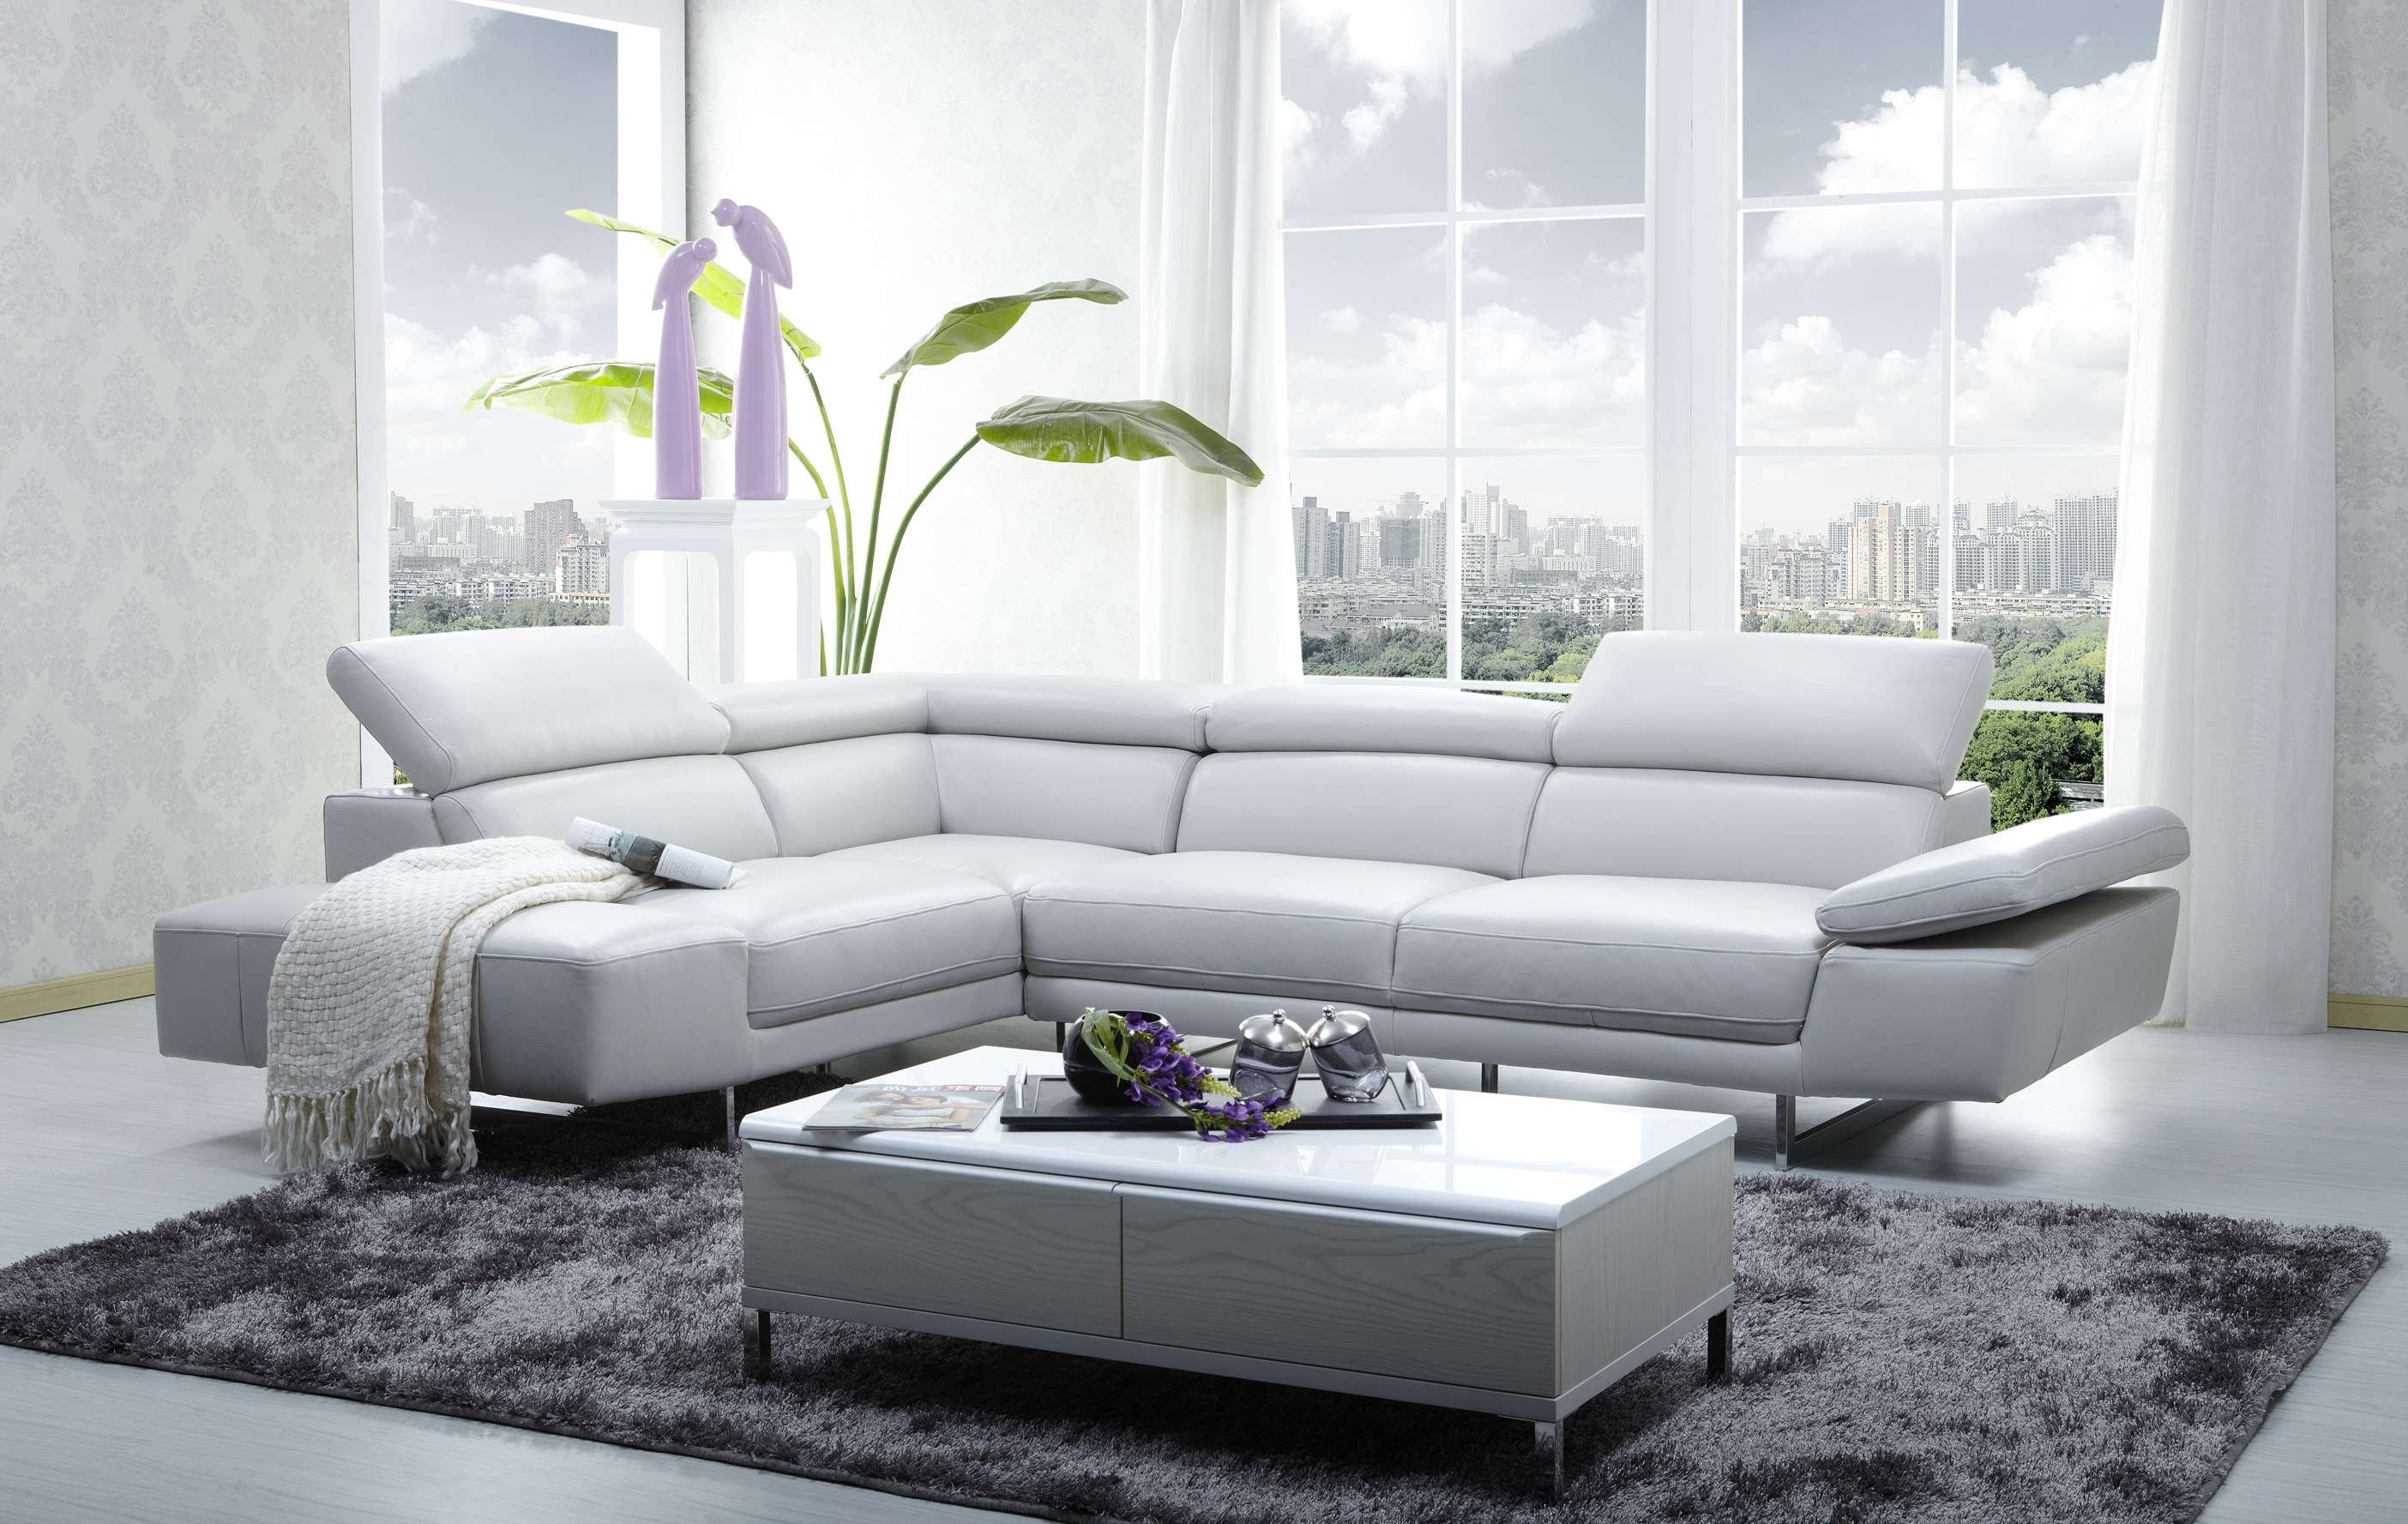 Fashionable 1717 Italian Leather Modern Sectional Sofa With Regard To Modern Sectional Sofas (View 7 of 20)